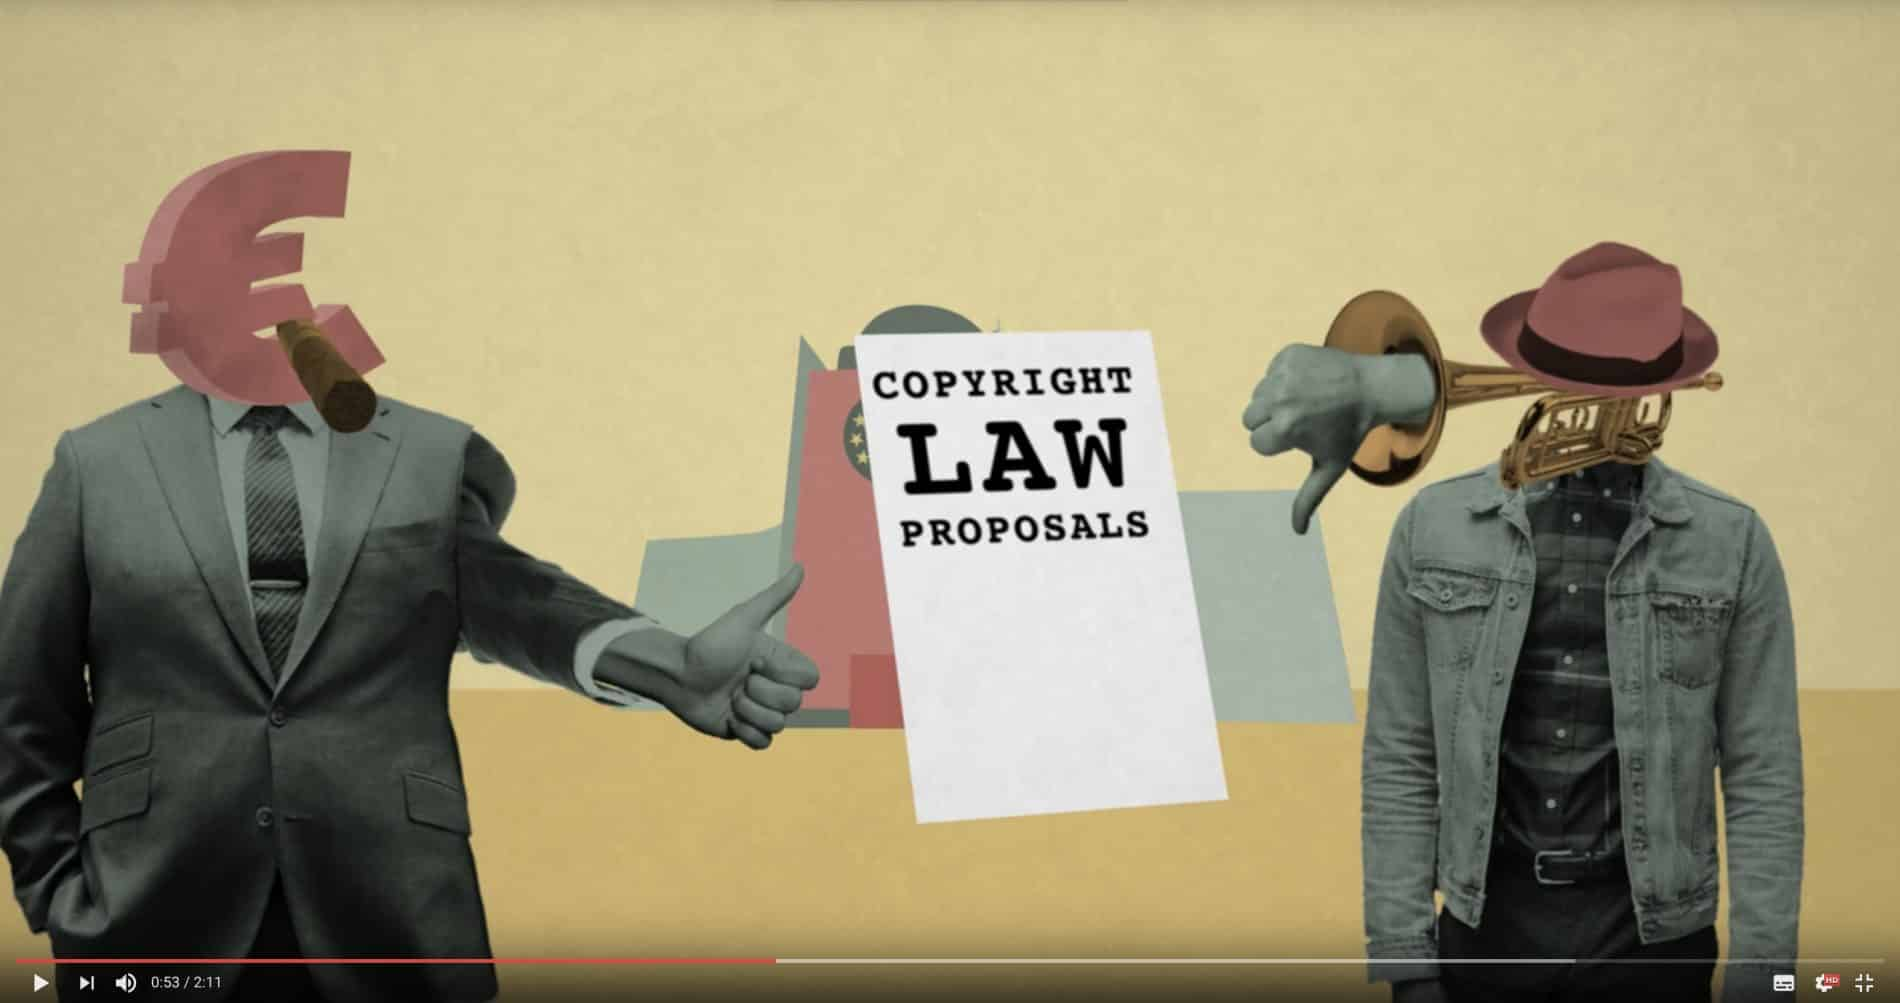 Europe's performers call on MEPs to rebalance copyright and guarantee a fair remuneration from streaming and download services